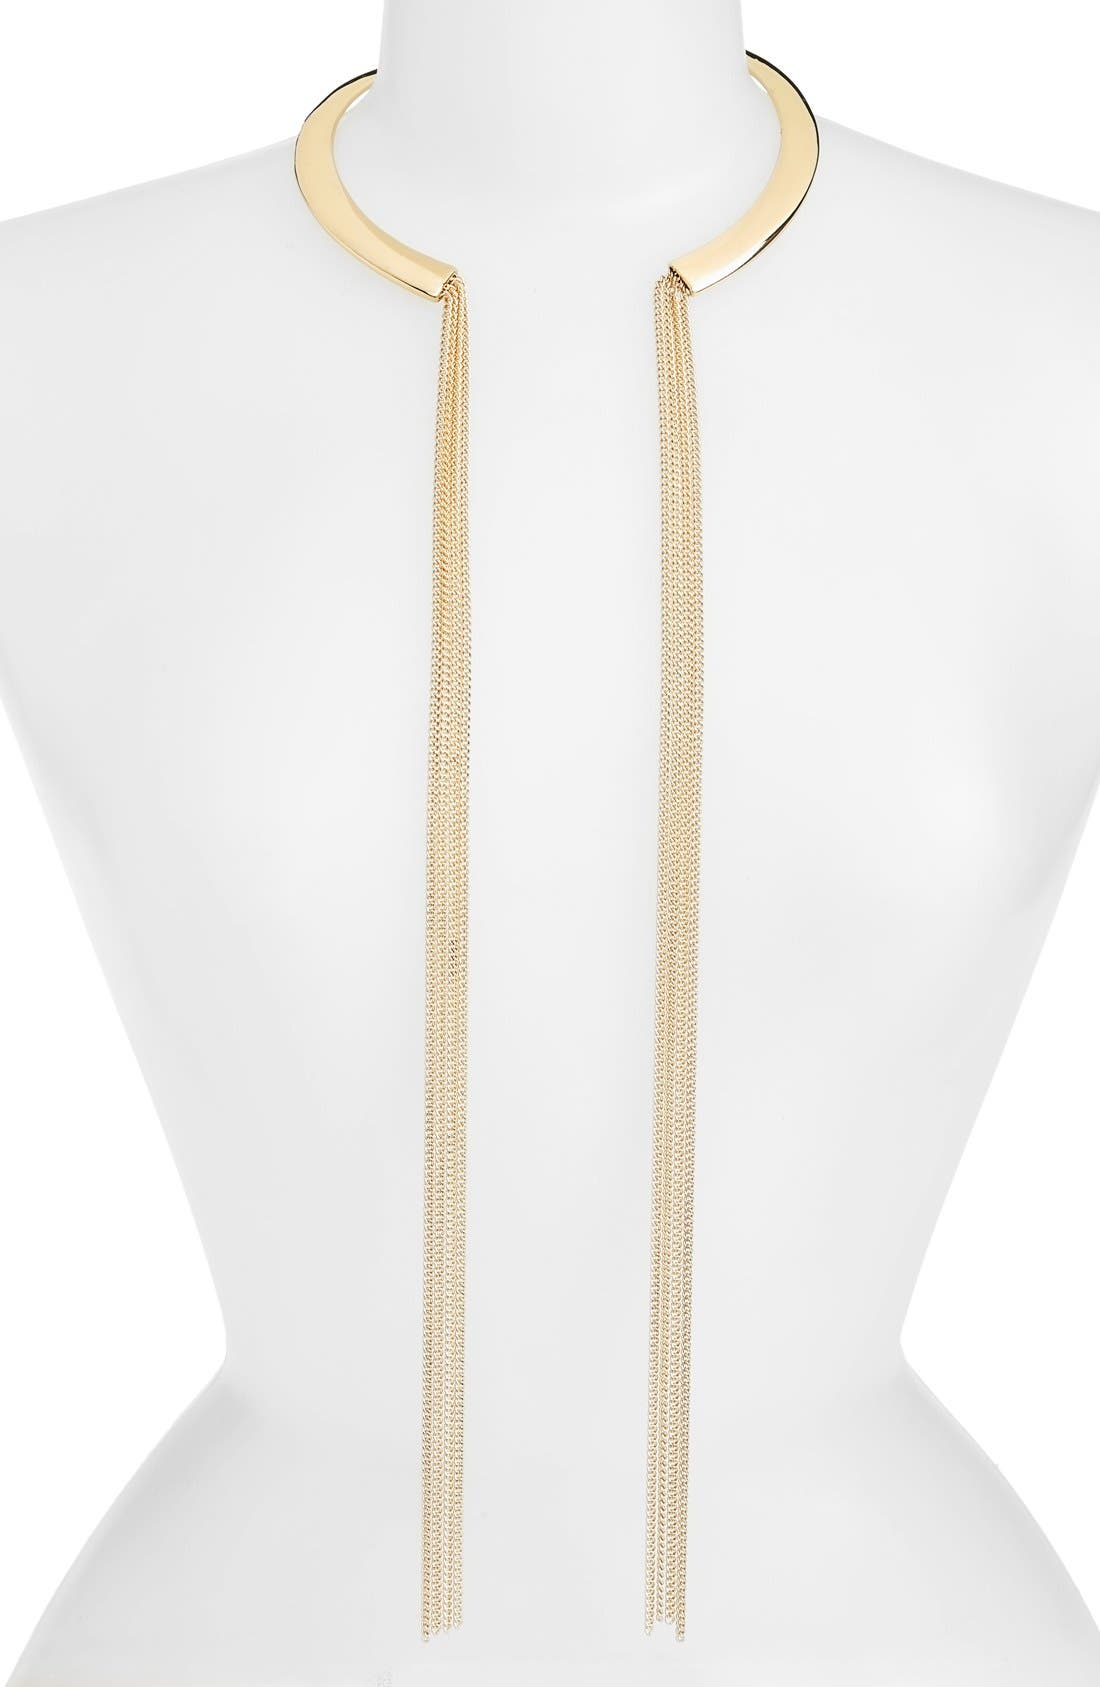 Main Image - Nordstrom Chain Tassel Collar Necklace